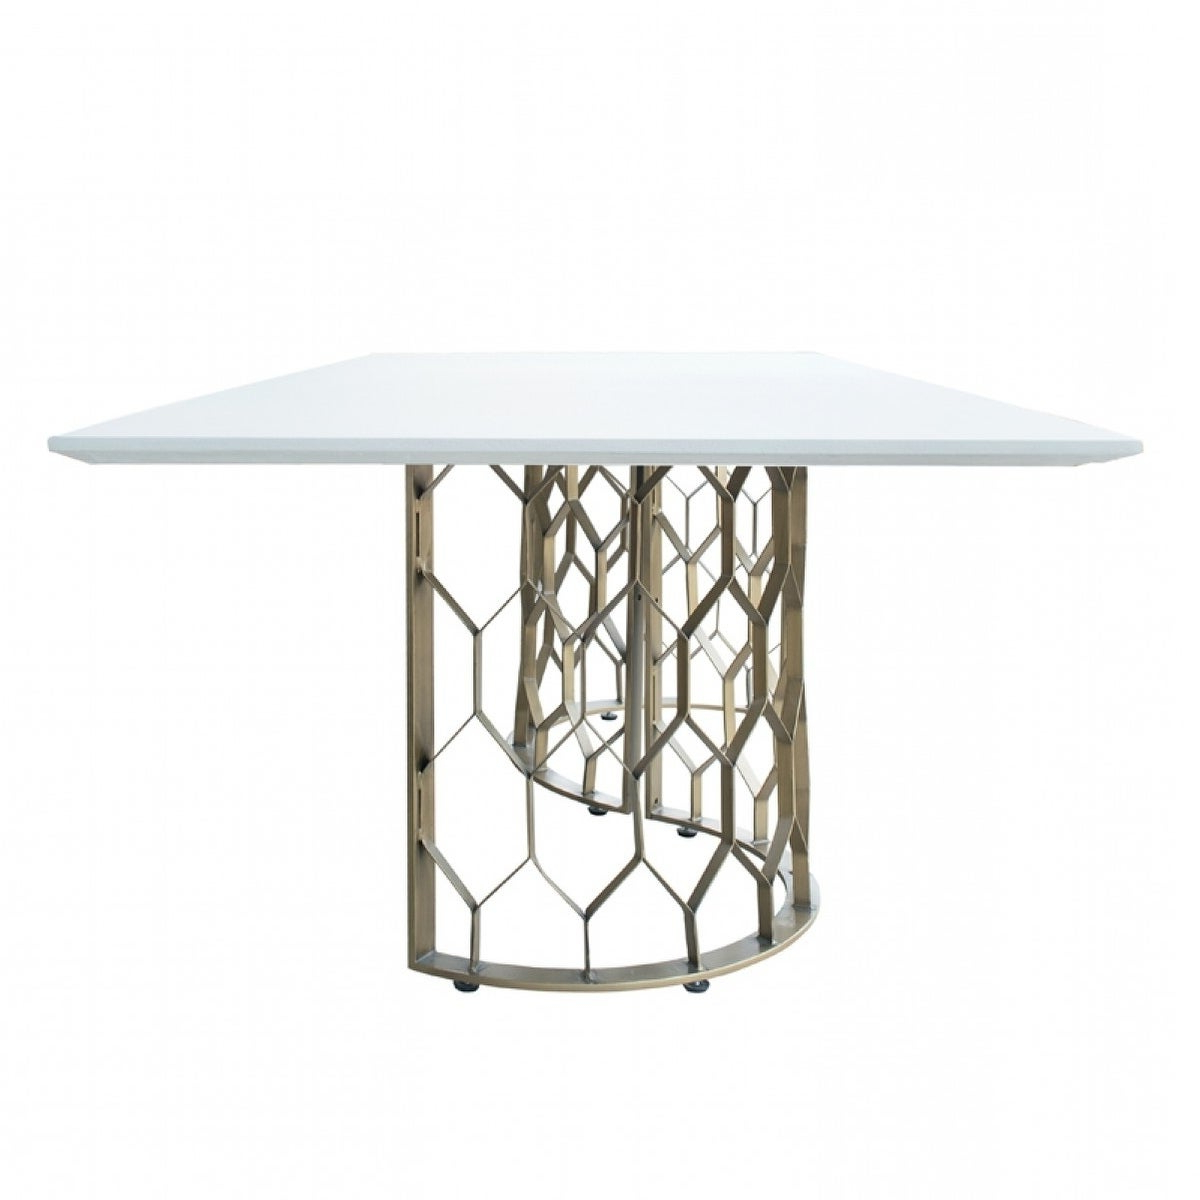 Faye Dining Tables Inside Most Popular Modrest Faye Modern White Concrete & Antique Brass Dining Table (View 9 of 25)